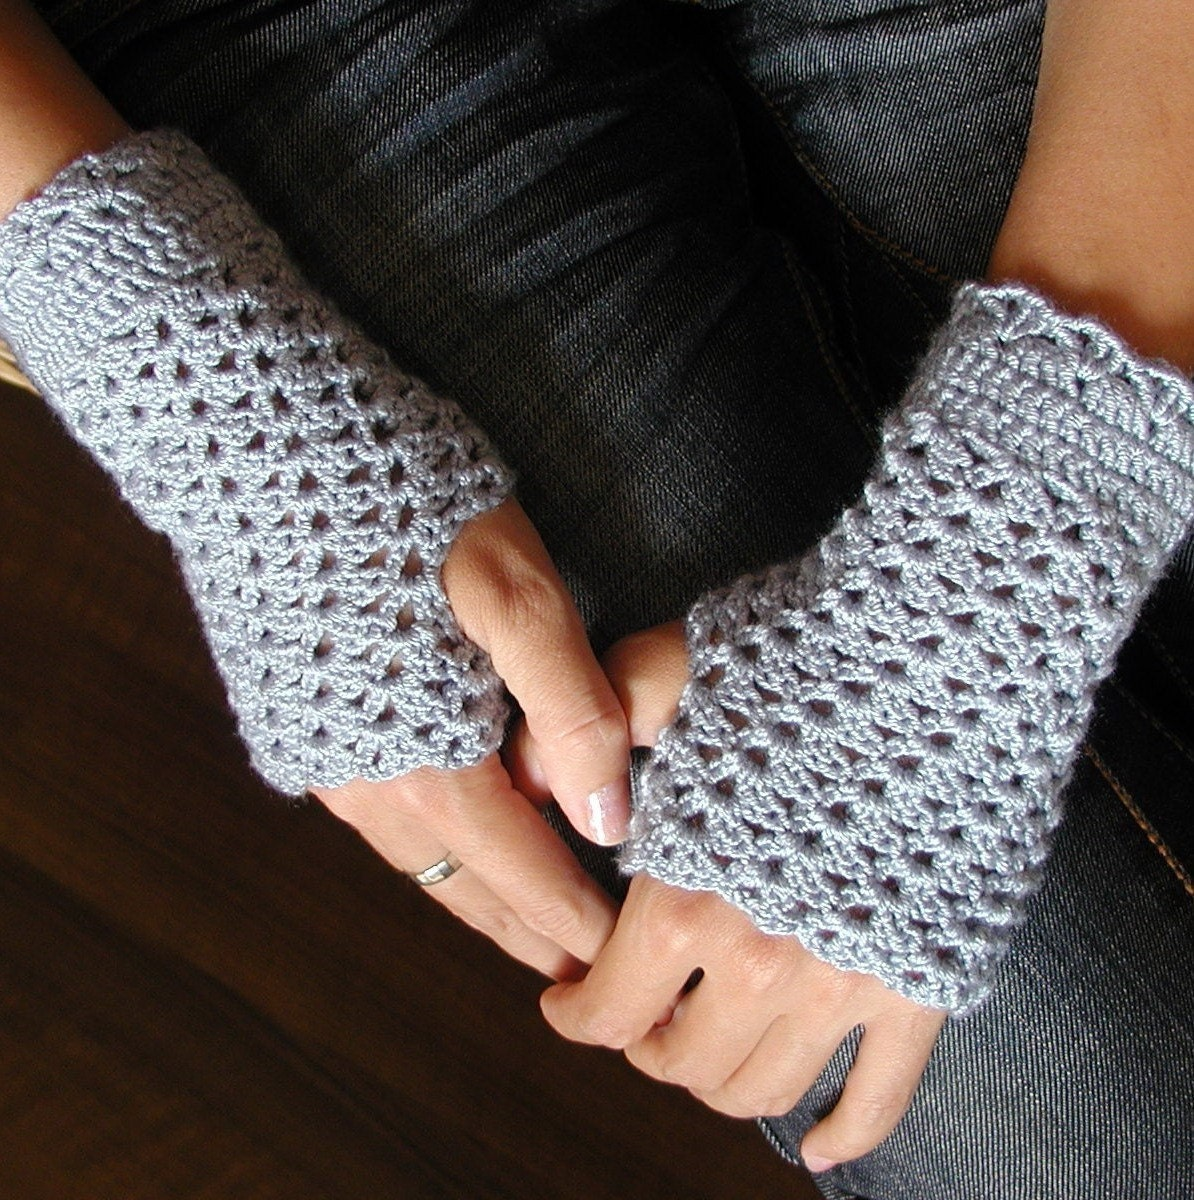 Free Crochet Patterns For Fingerless Gloves And Mitts : Crocheted Fingerless Mittens PDF Crochet Pattern